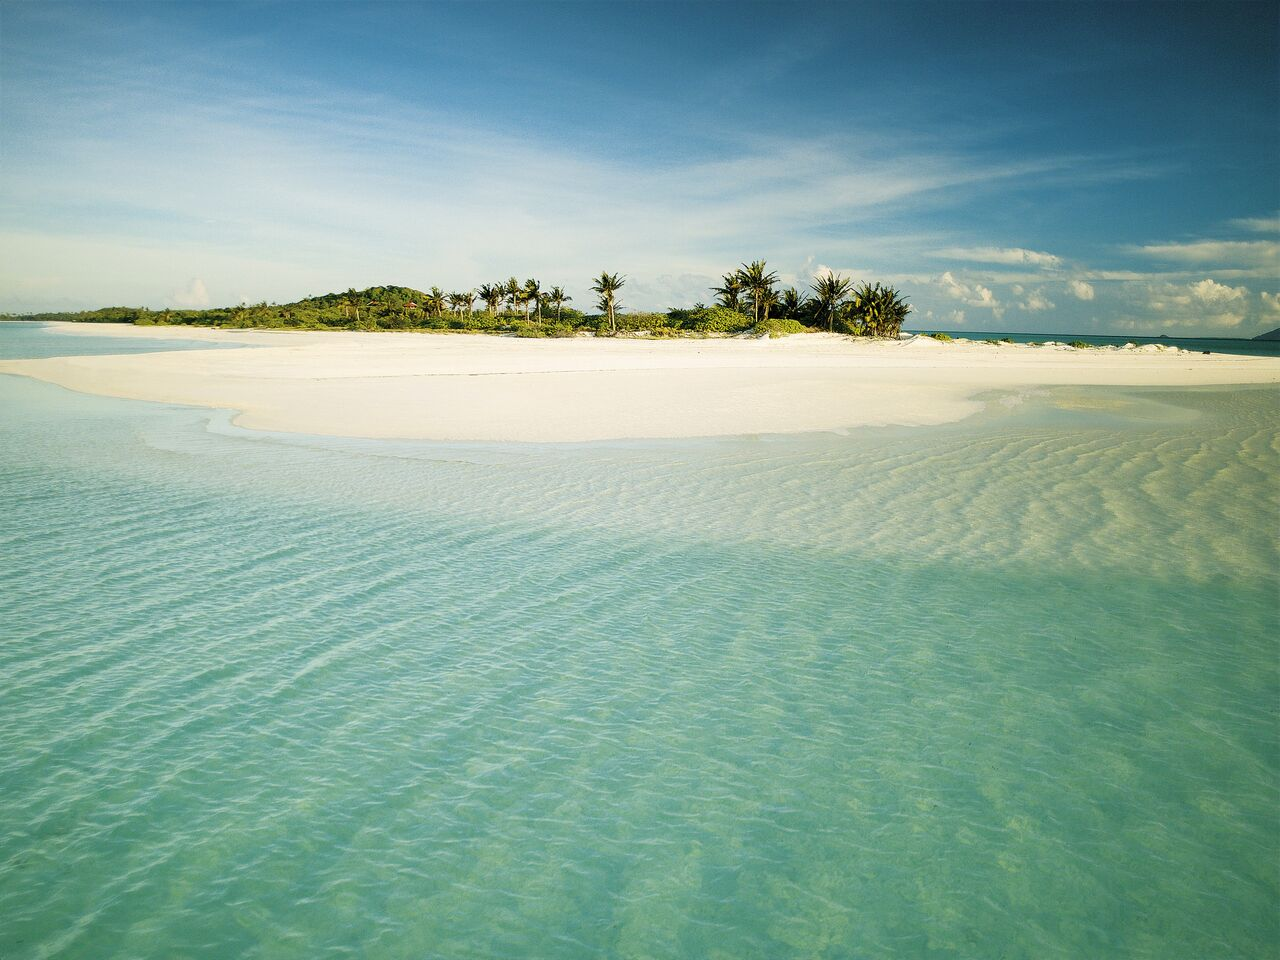 RS118_Amanpulo - Scenic-lpr_preview.jpg